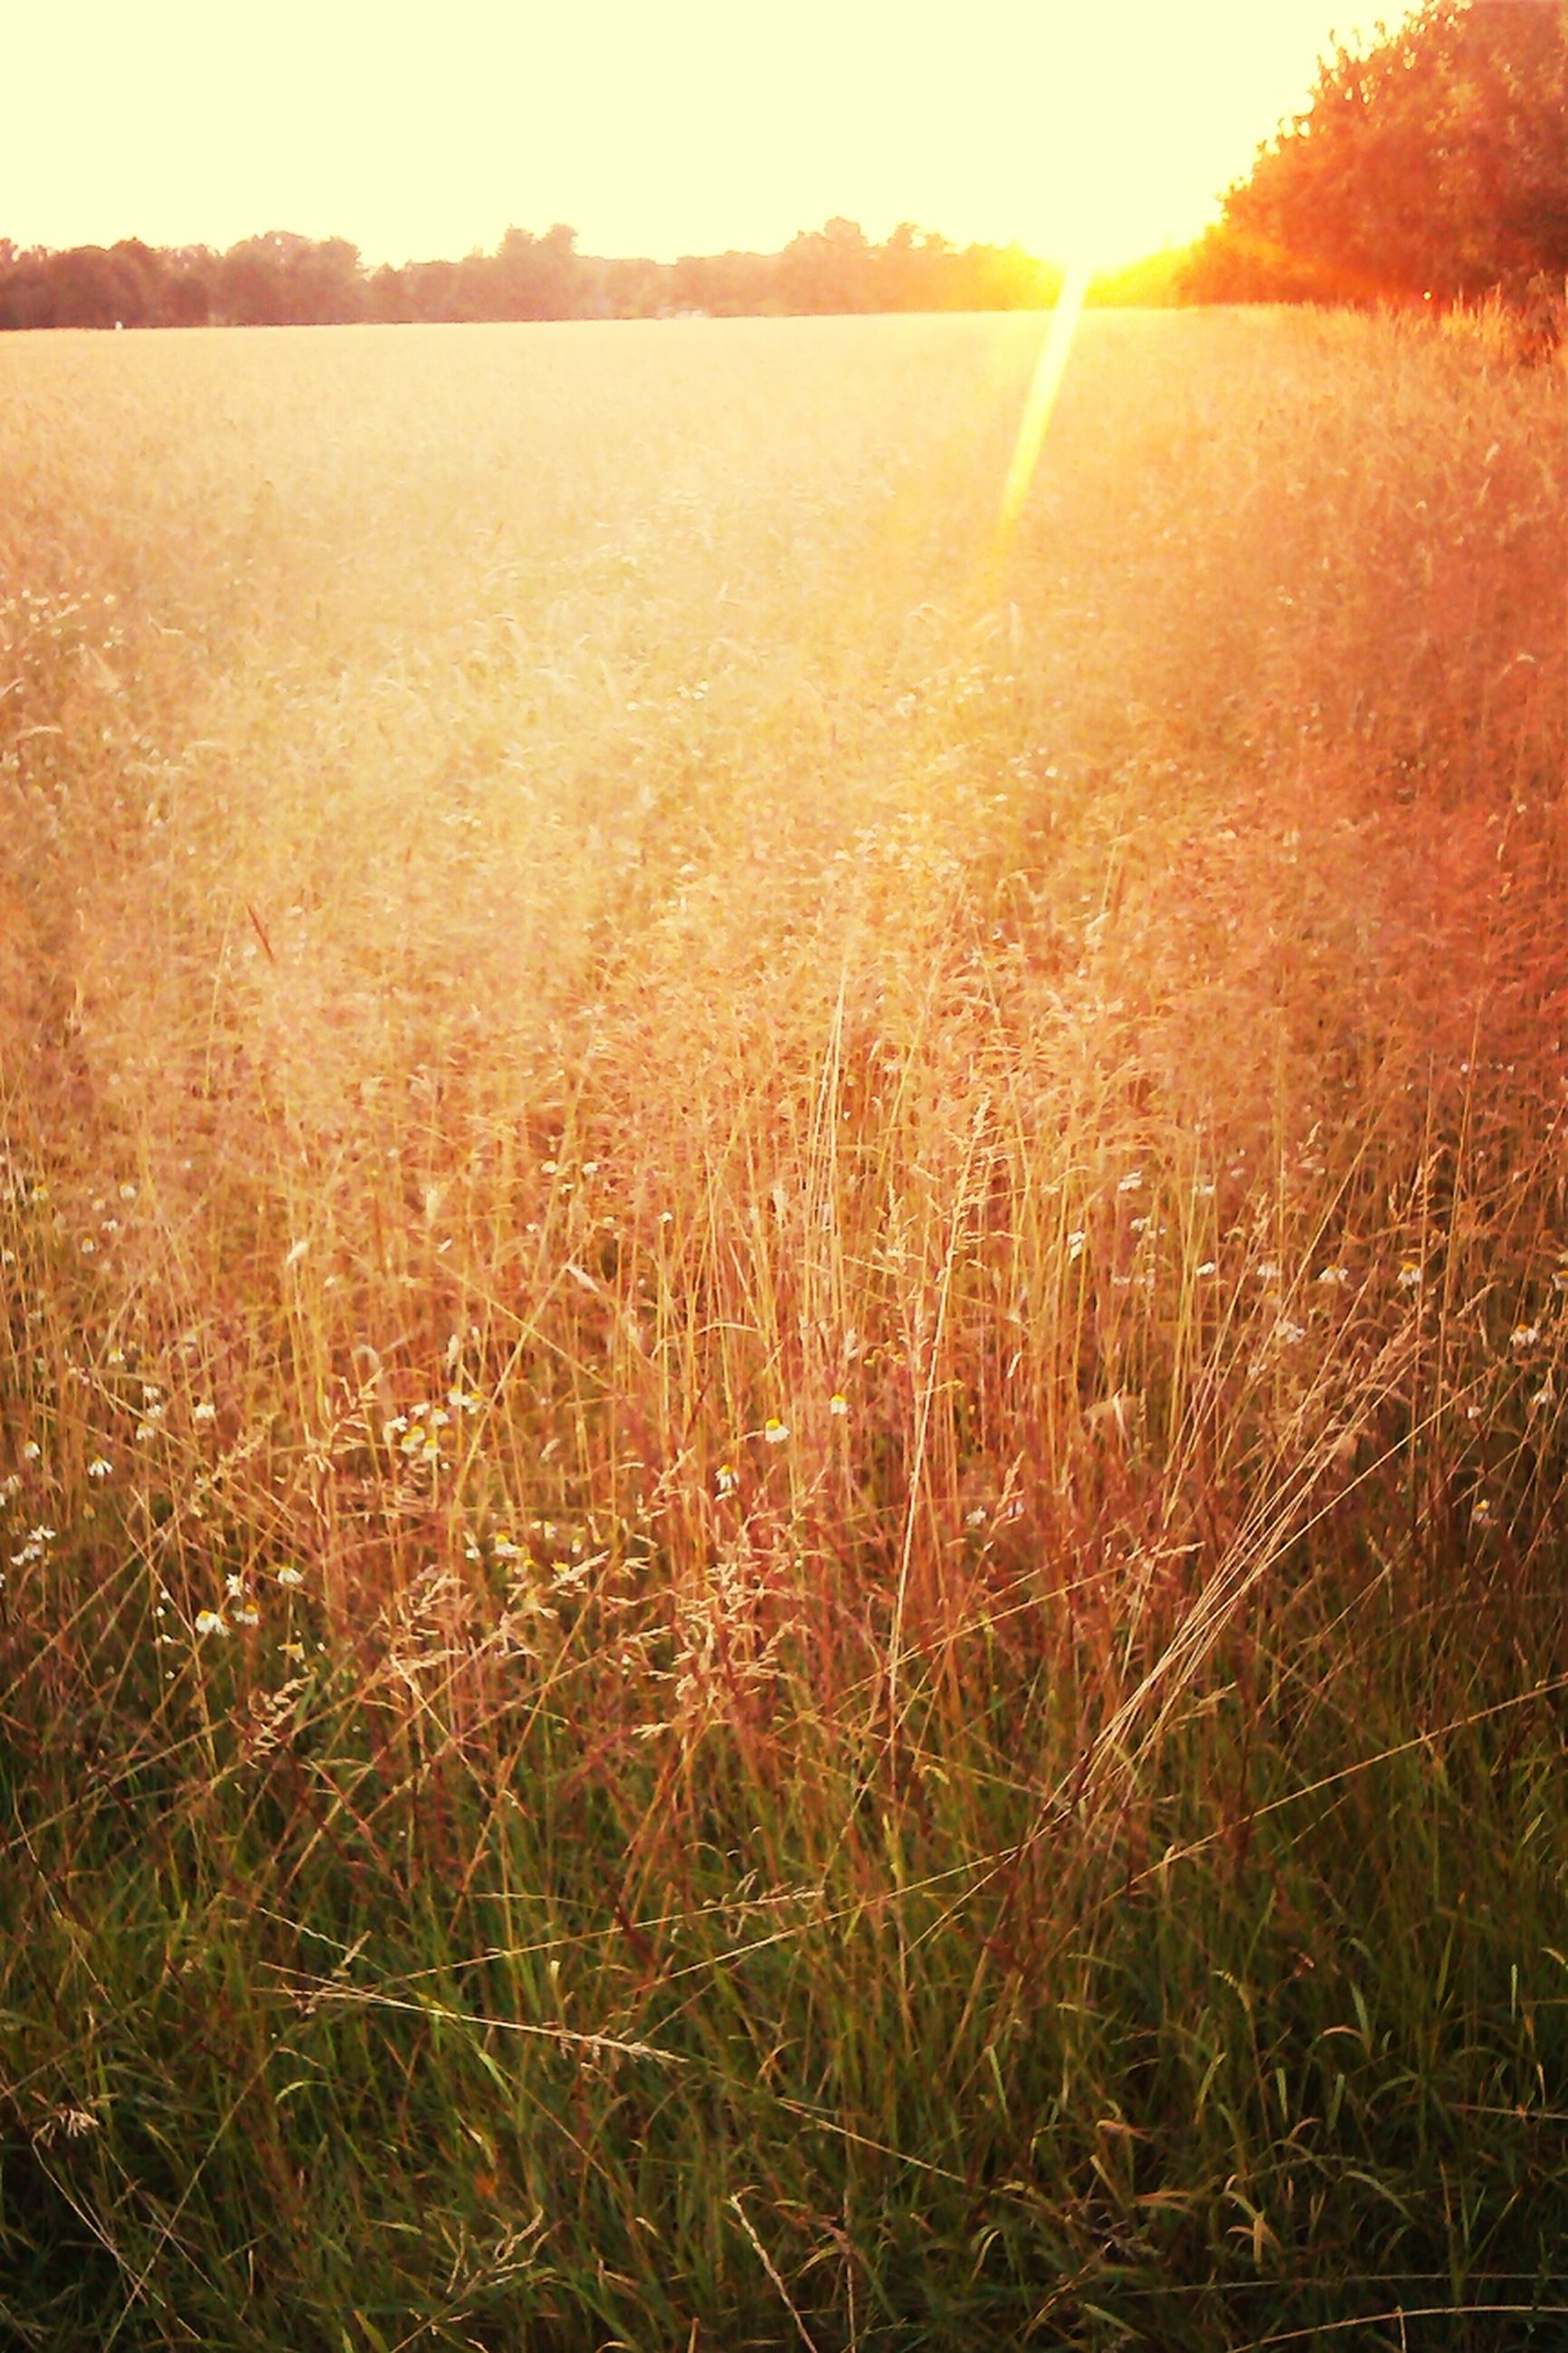 sun, sunbeam, sunlight, grass, lens flare, field, tranquility, tranquil scene, sunset, landscape, nature, scenics, beauty in nature, growth, plant, grassy, bright, sunny, sky, outdoors